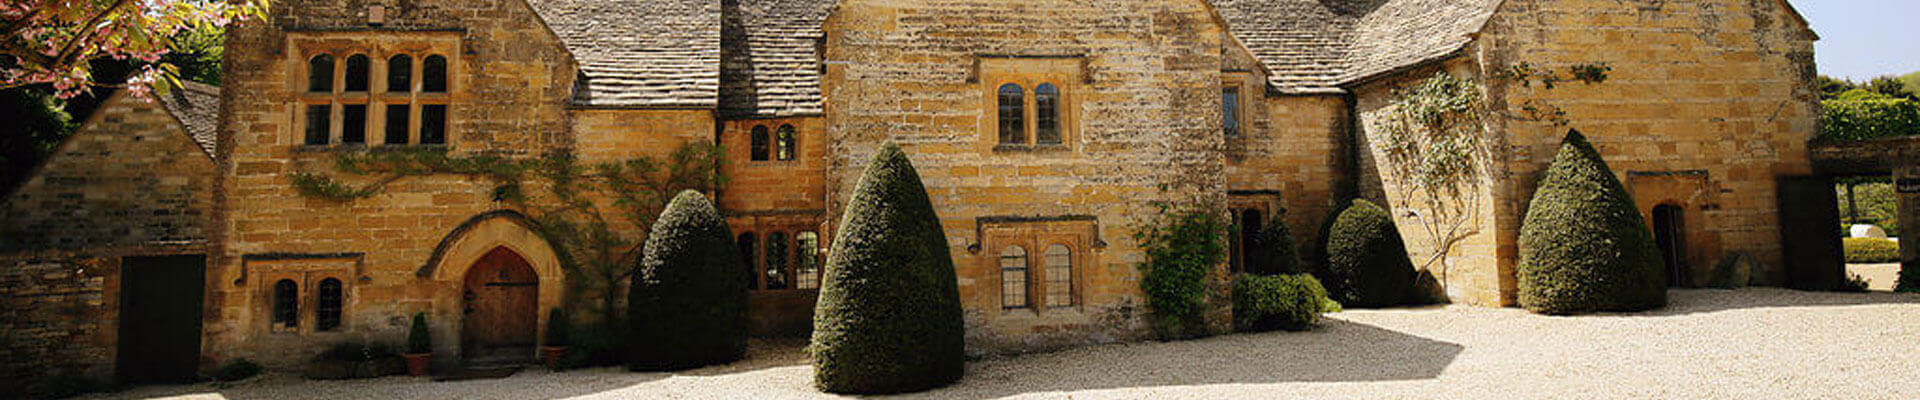 Photo of the entrance to Temple Guiting Estate